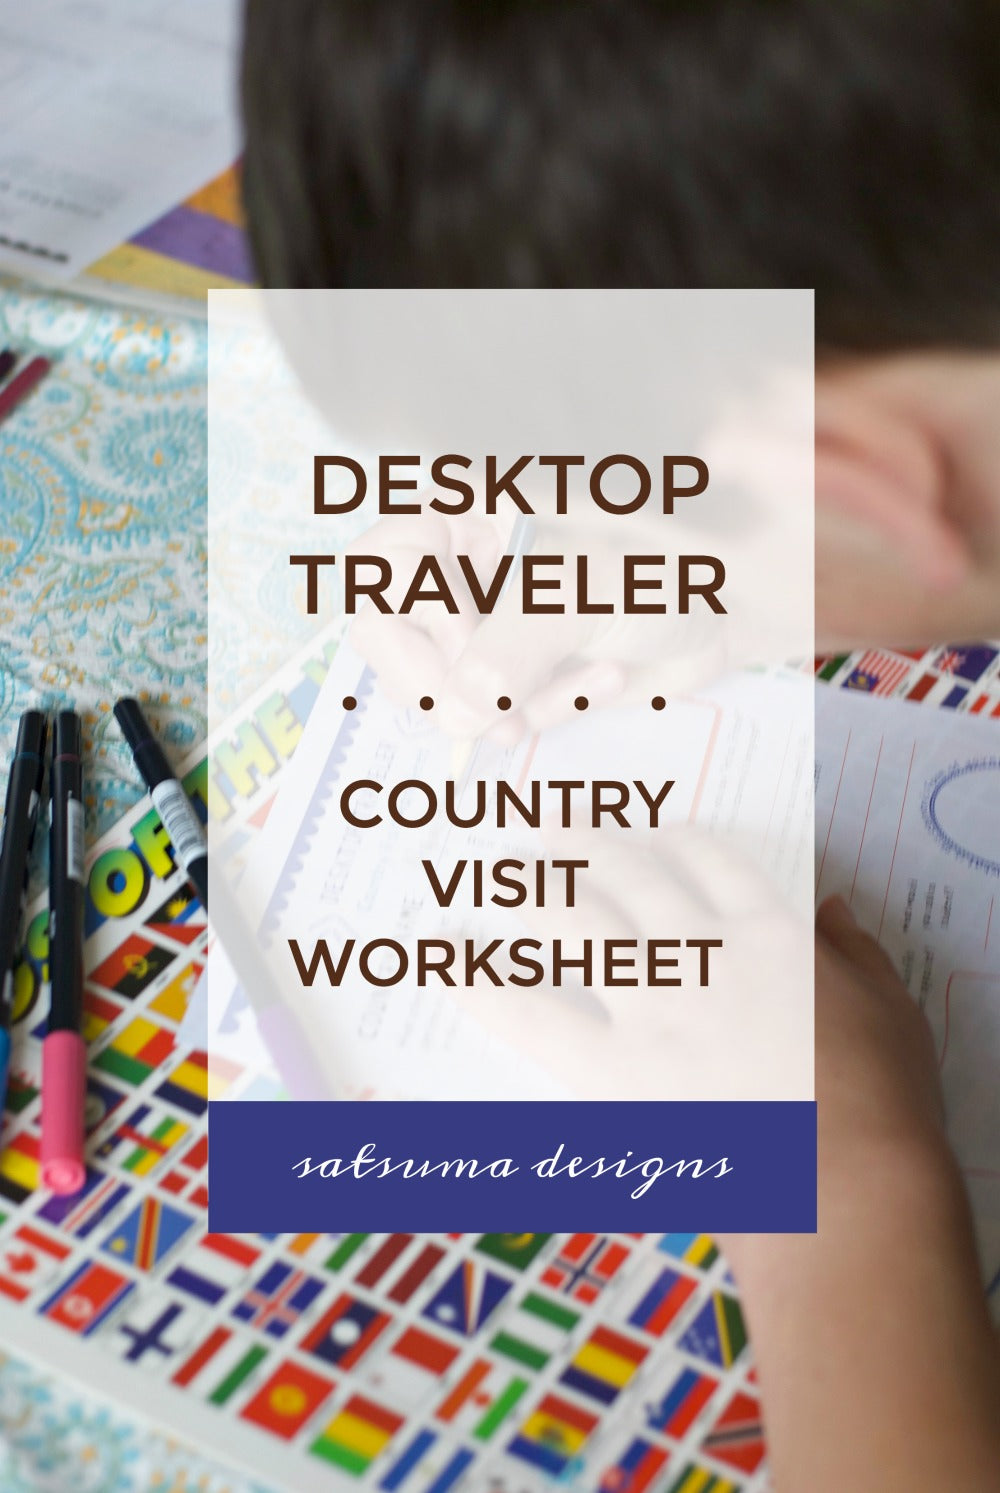 Desktop Traveler | Country Visit Worksheet